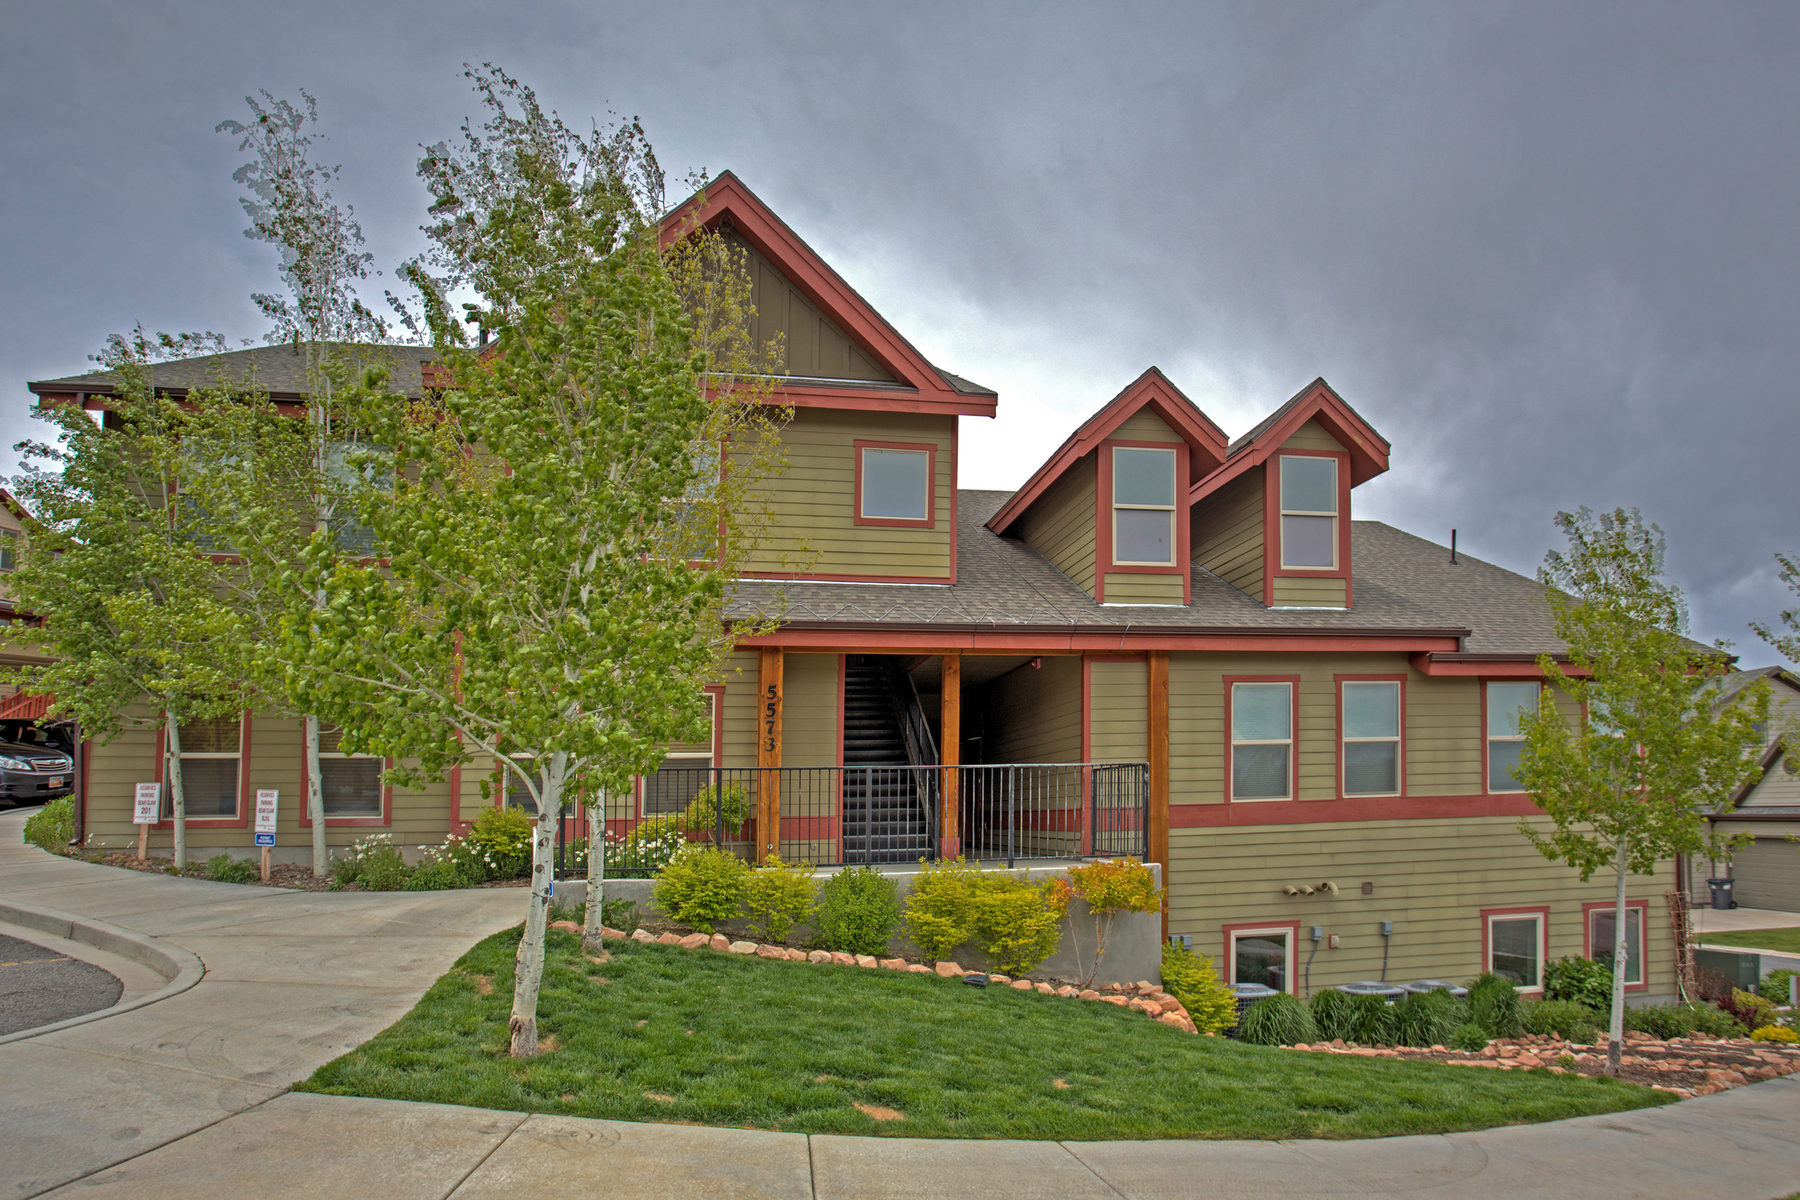 Condominium for Sale at Top Floor Condo in Bear Hollow 5573 N Oslo Ln Unit #203 Park City, Utah 84098 United States